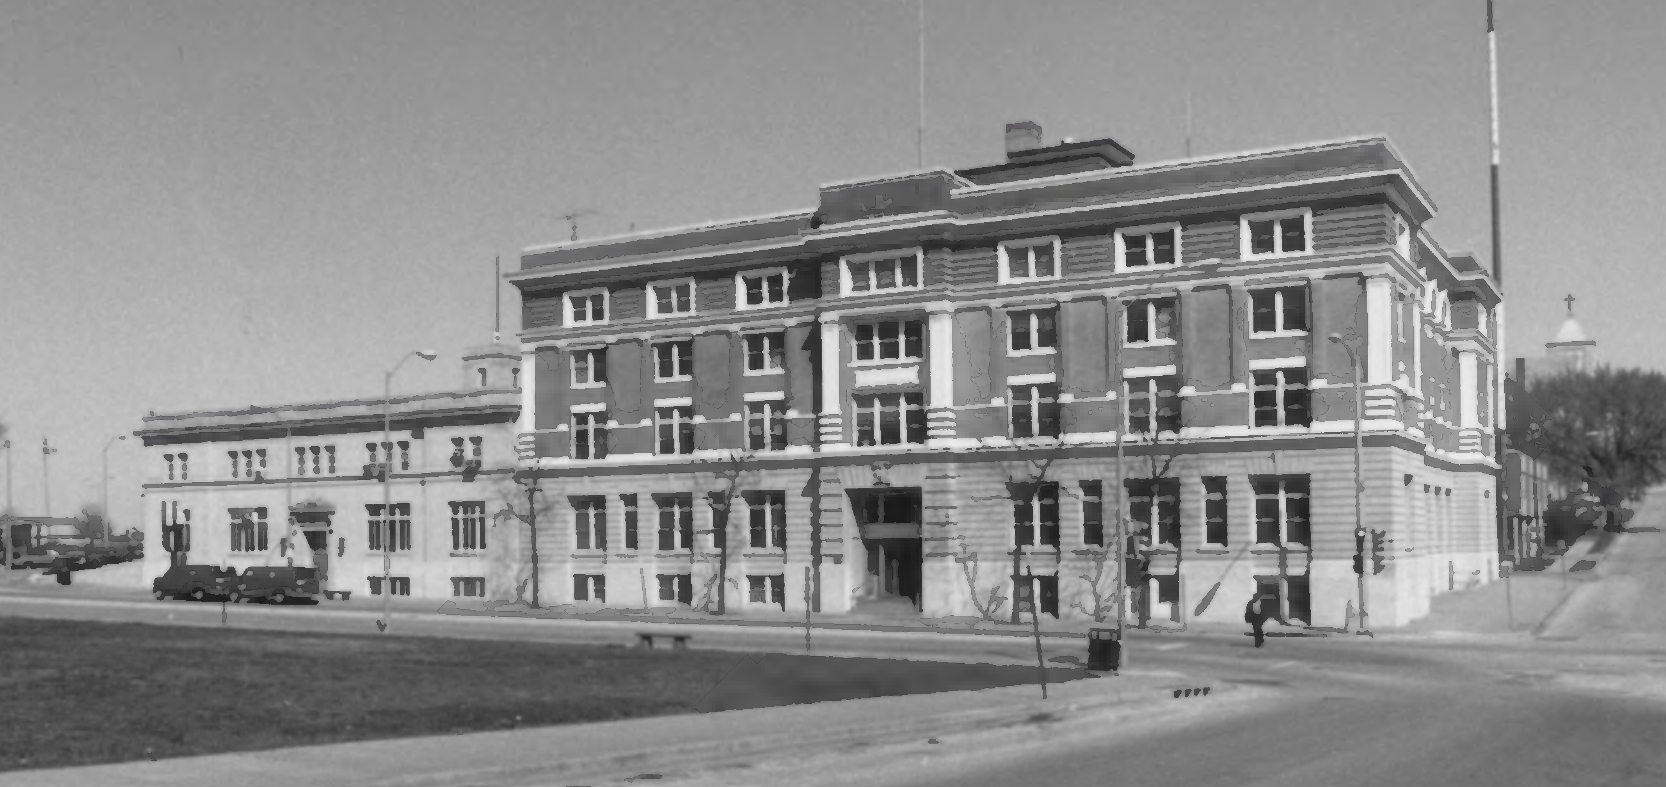 1985 View of the City Hall & Fire Headquarters